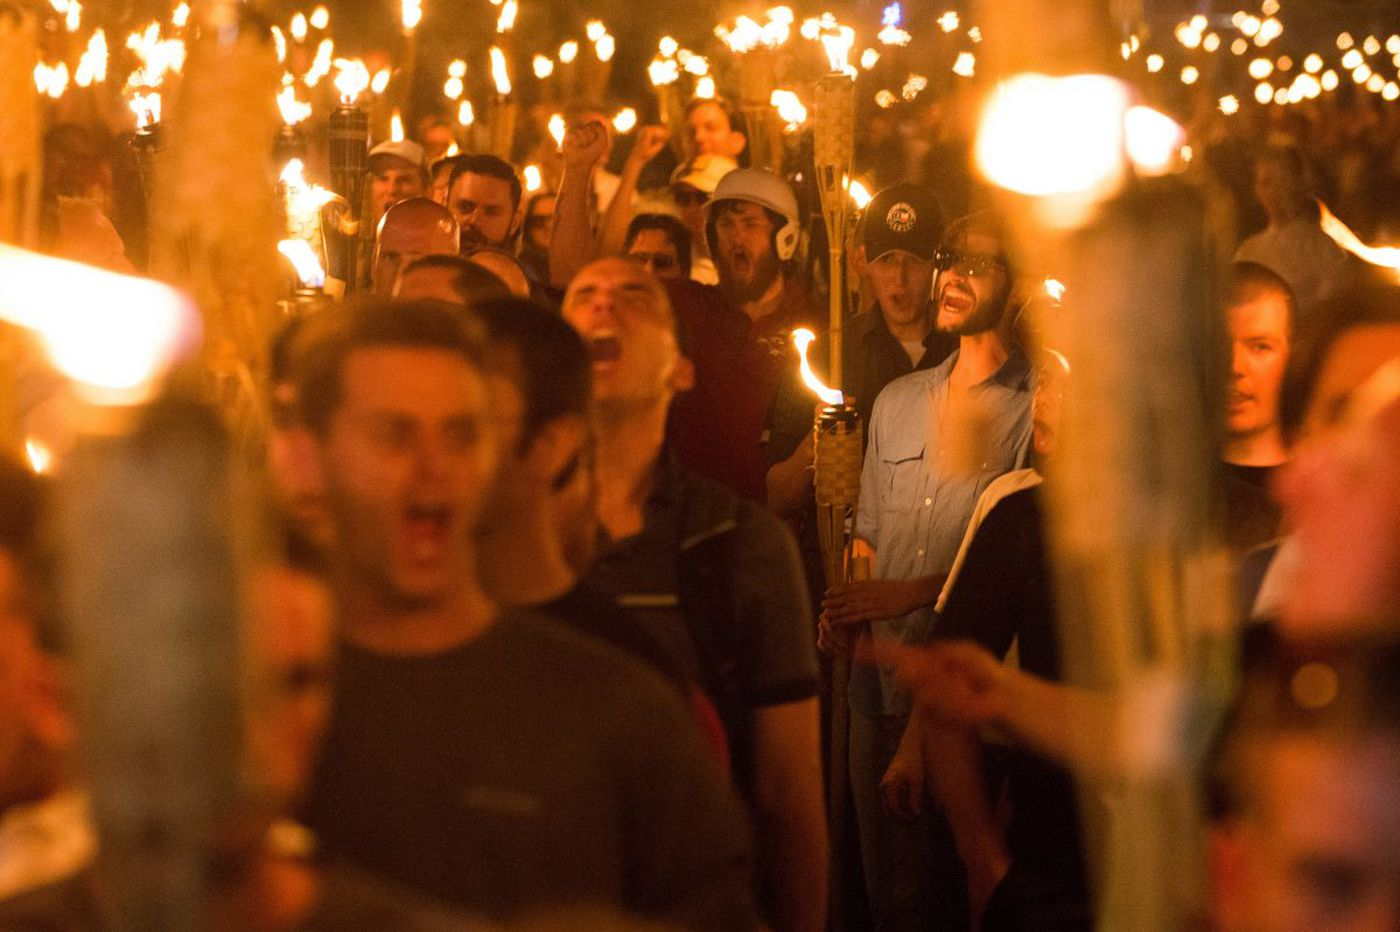 Trump and his followers concoct 'dangers' to spread hate